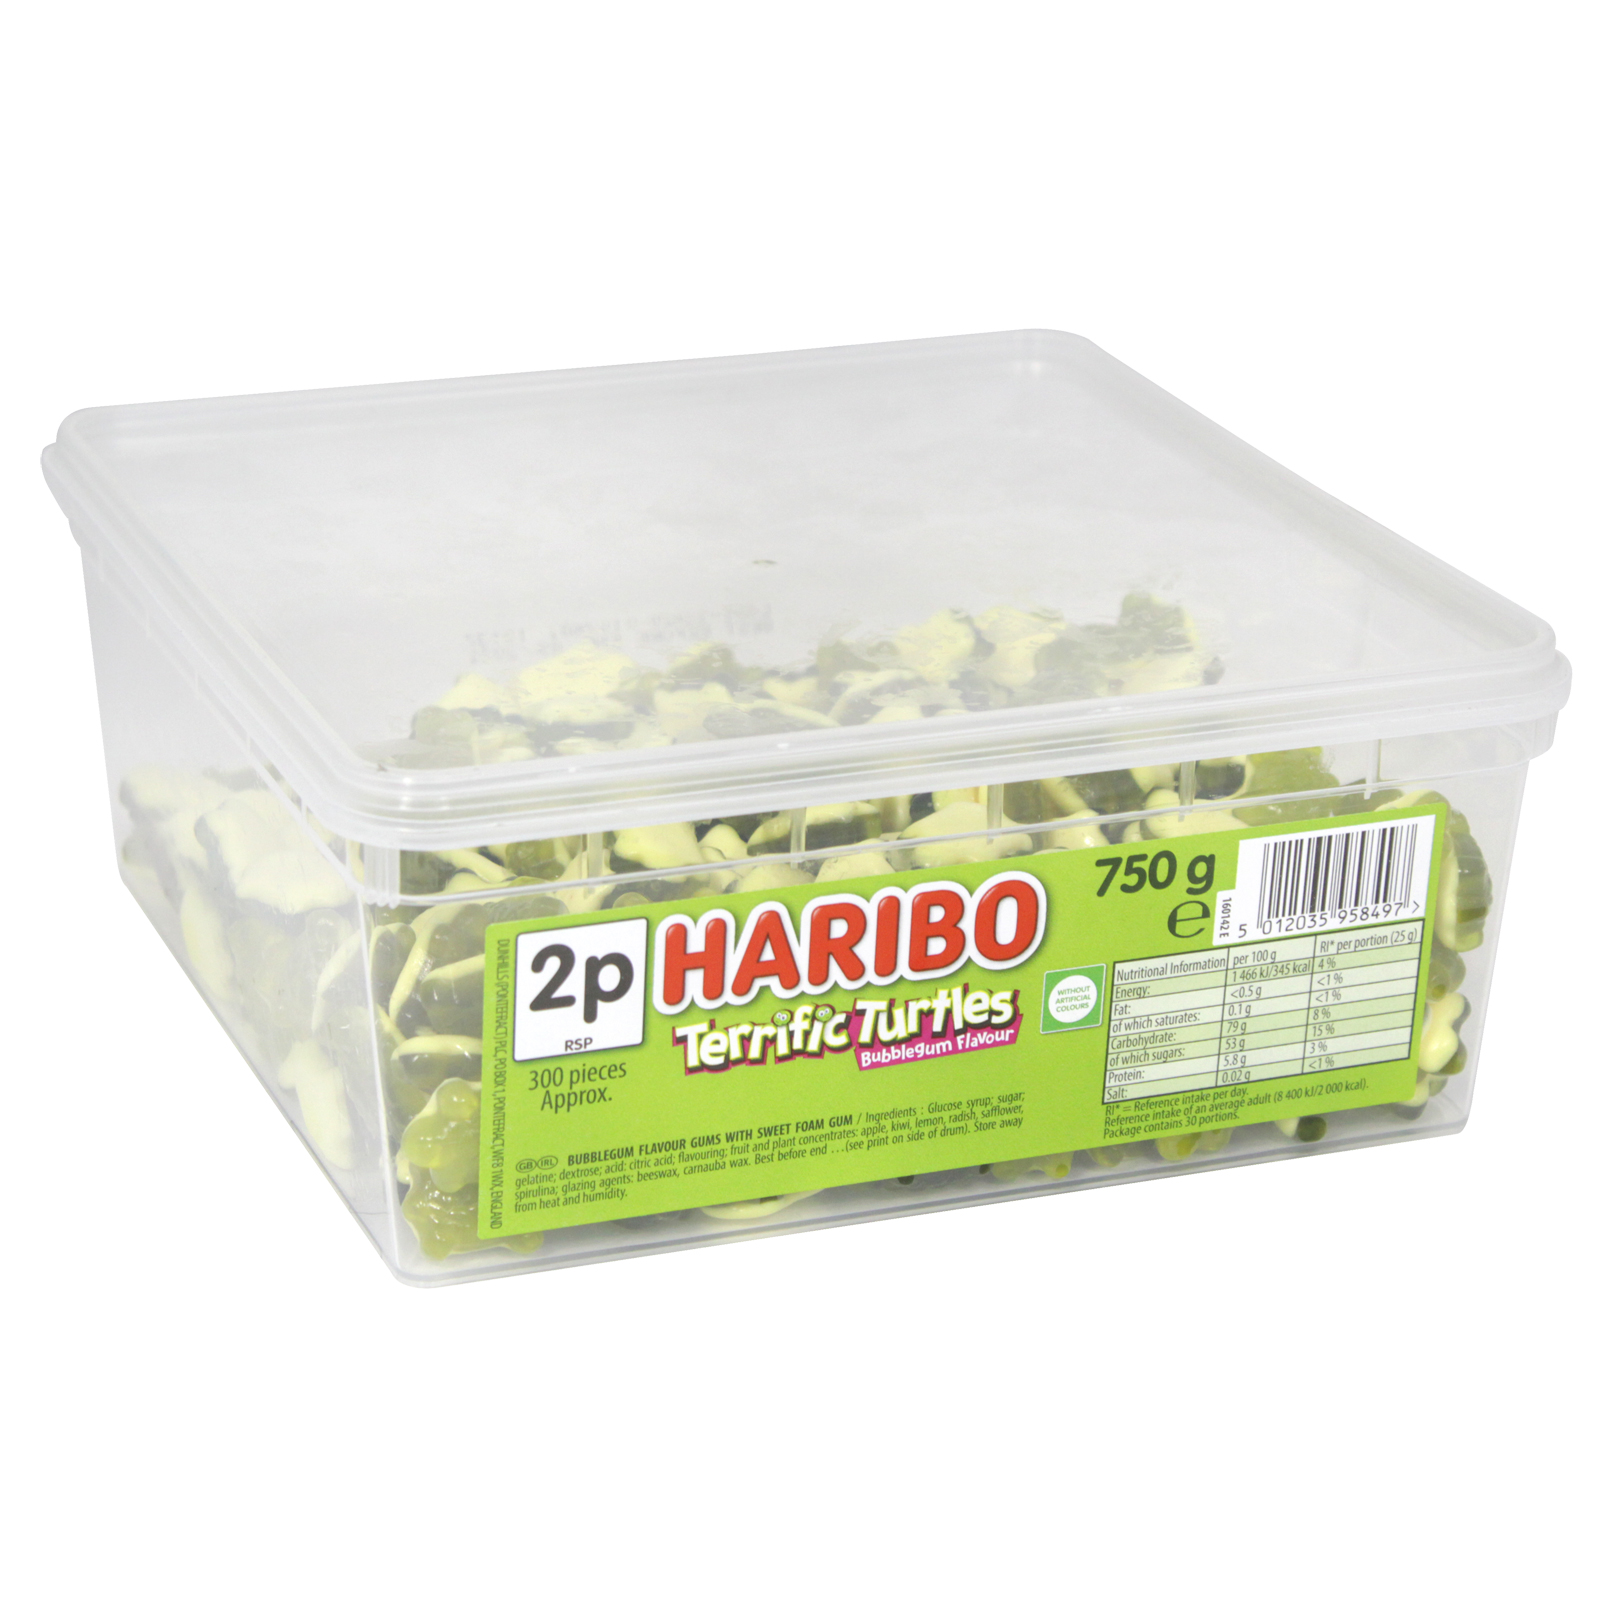 HARIBO TERRIFIC TURTLES DRUM 750G APPROX 300 PIECES